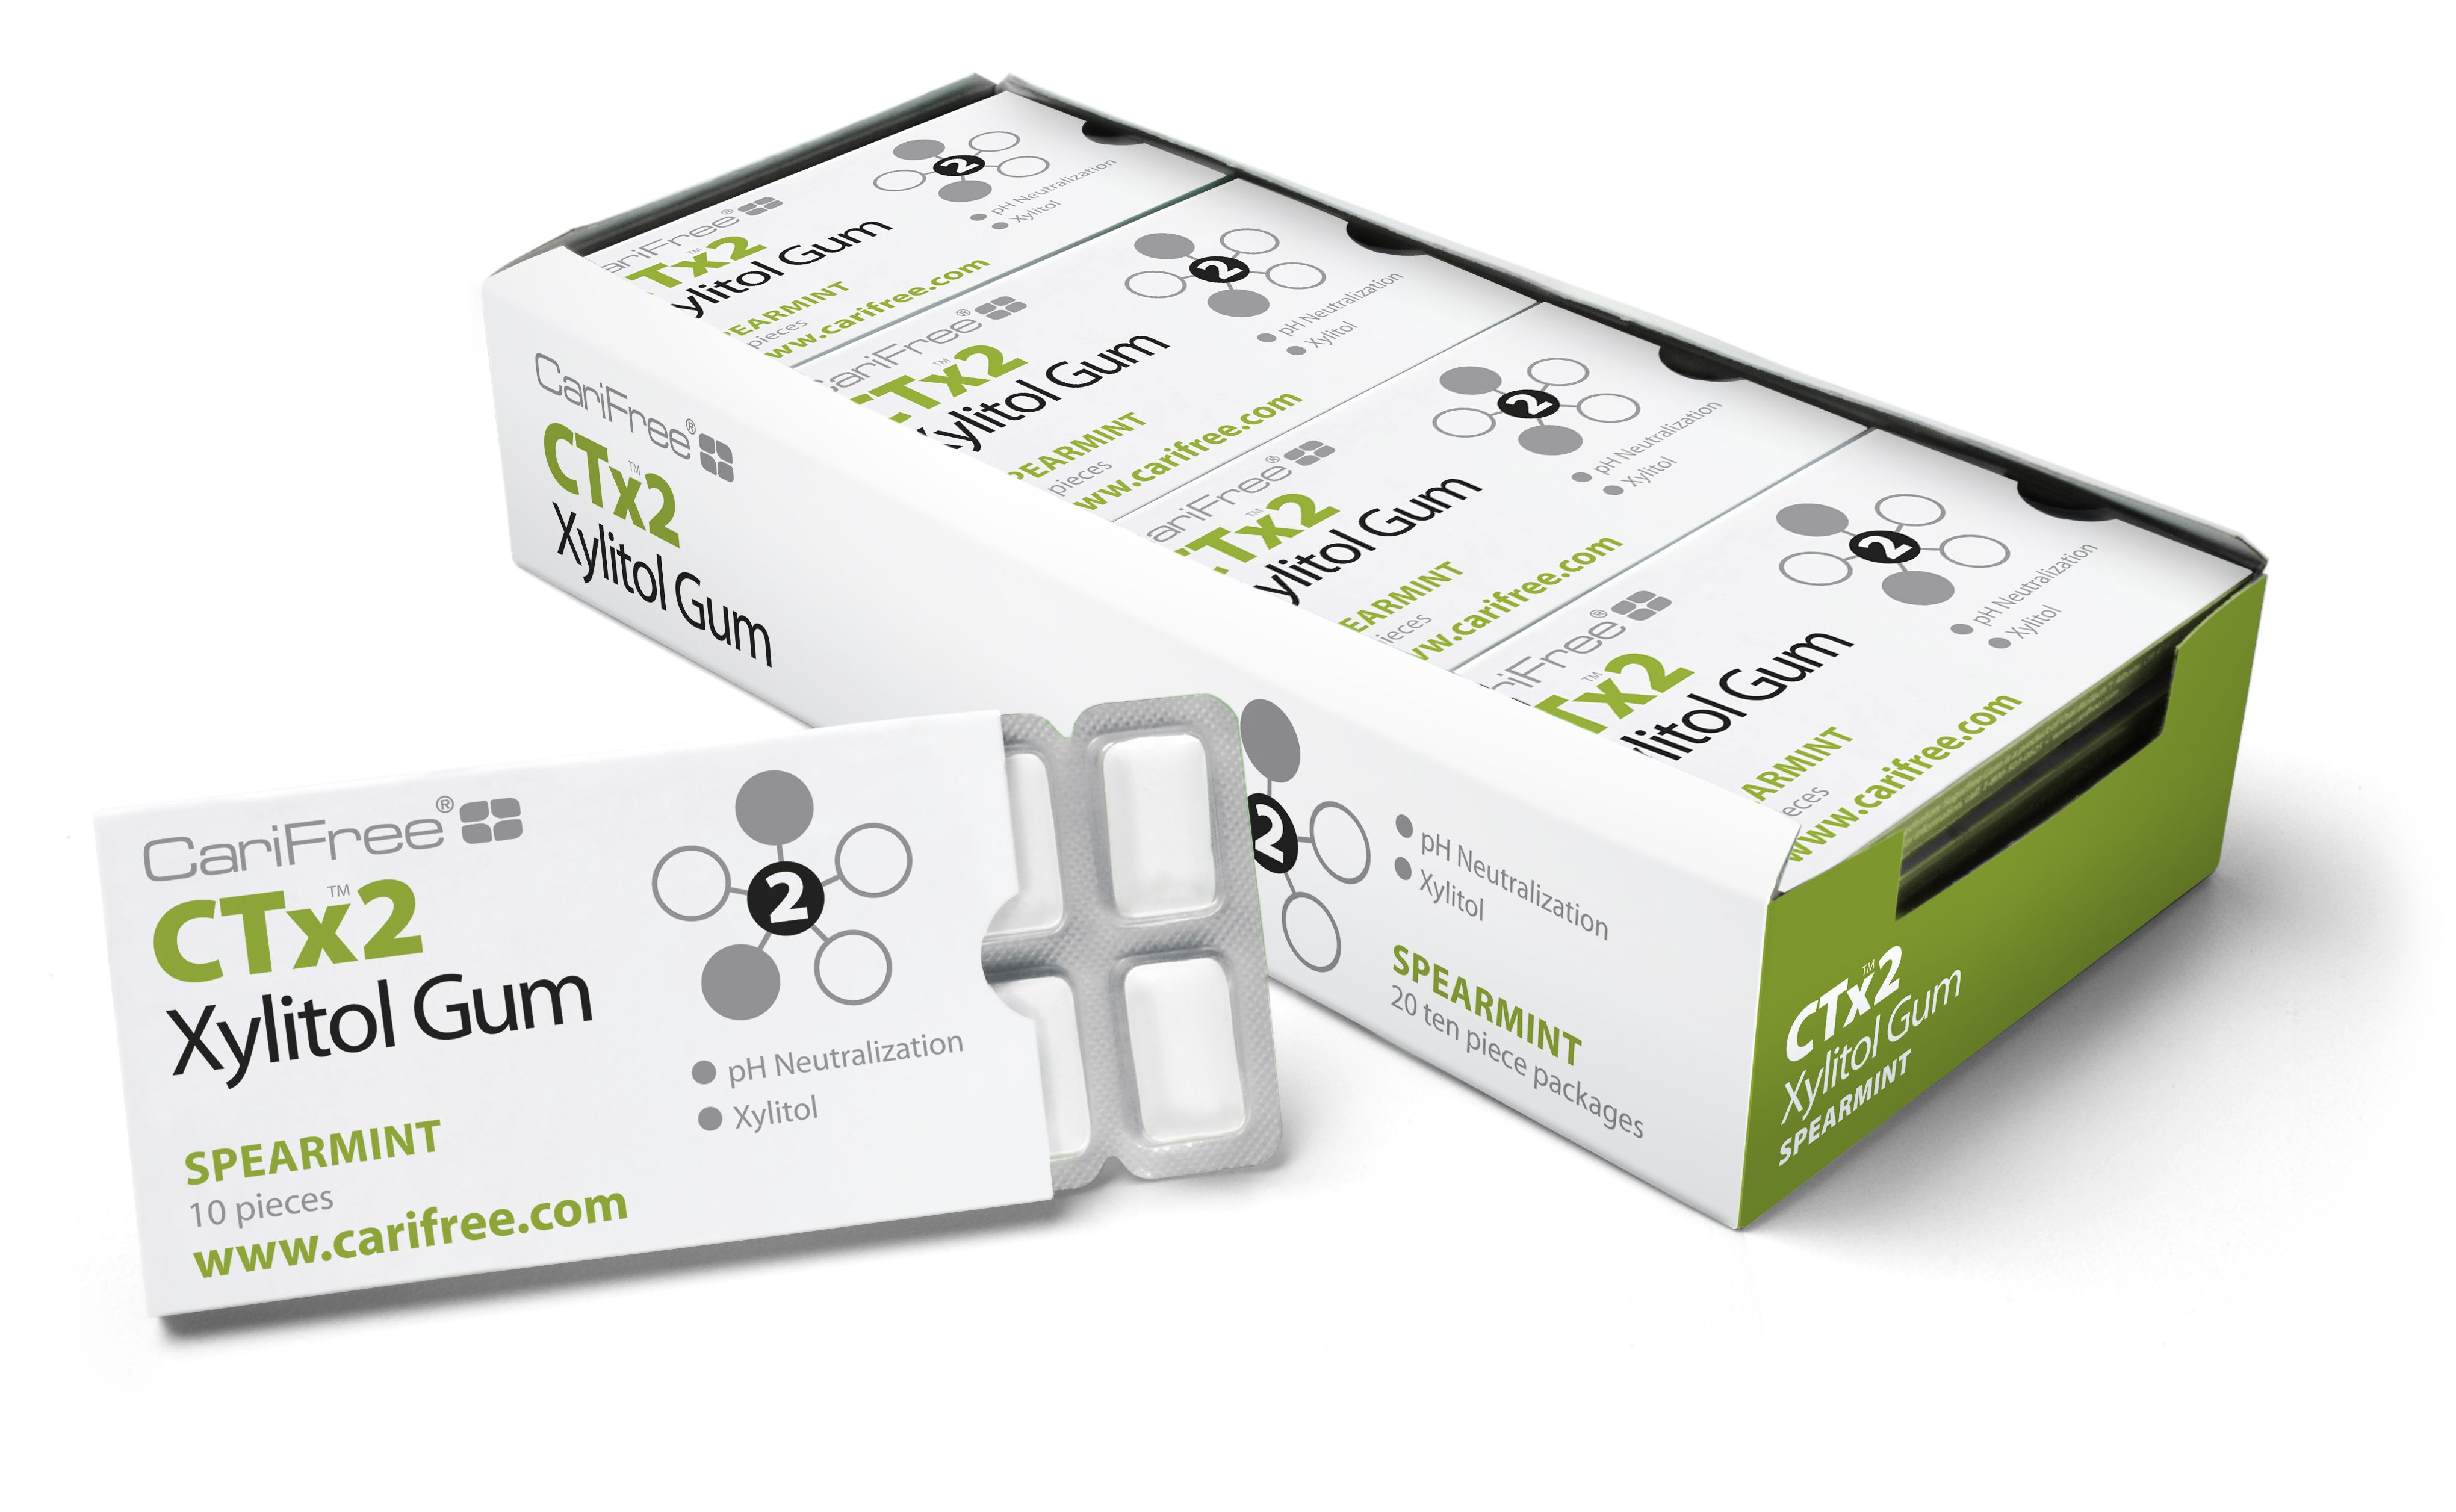 CTx2 Xylitol Gum helps those with Dry Mouth, the